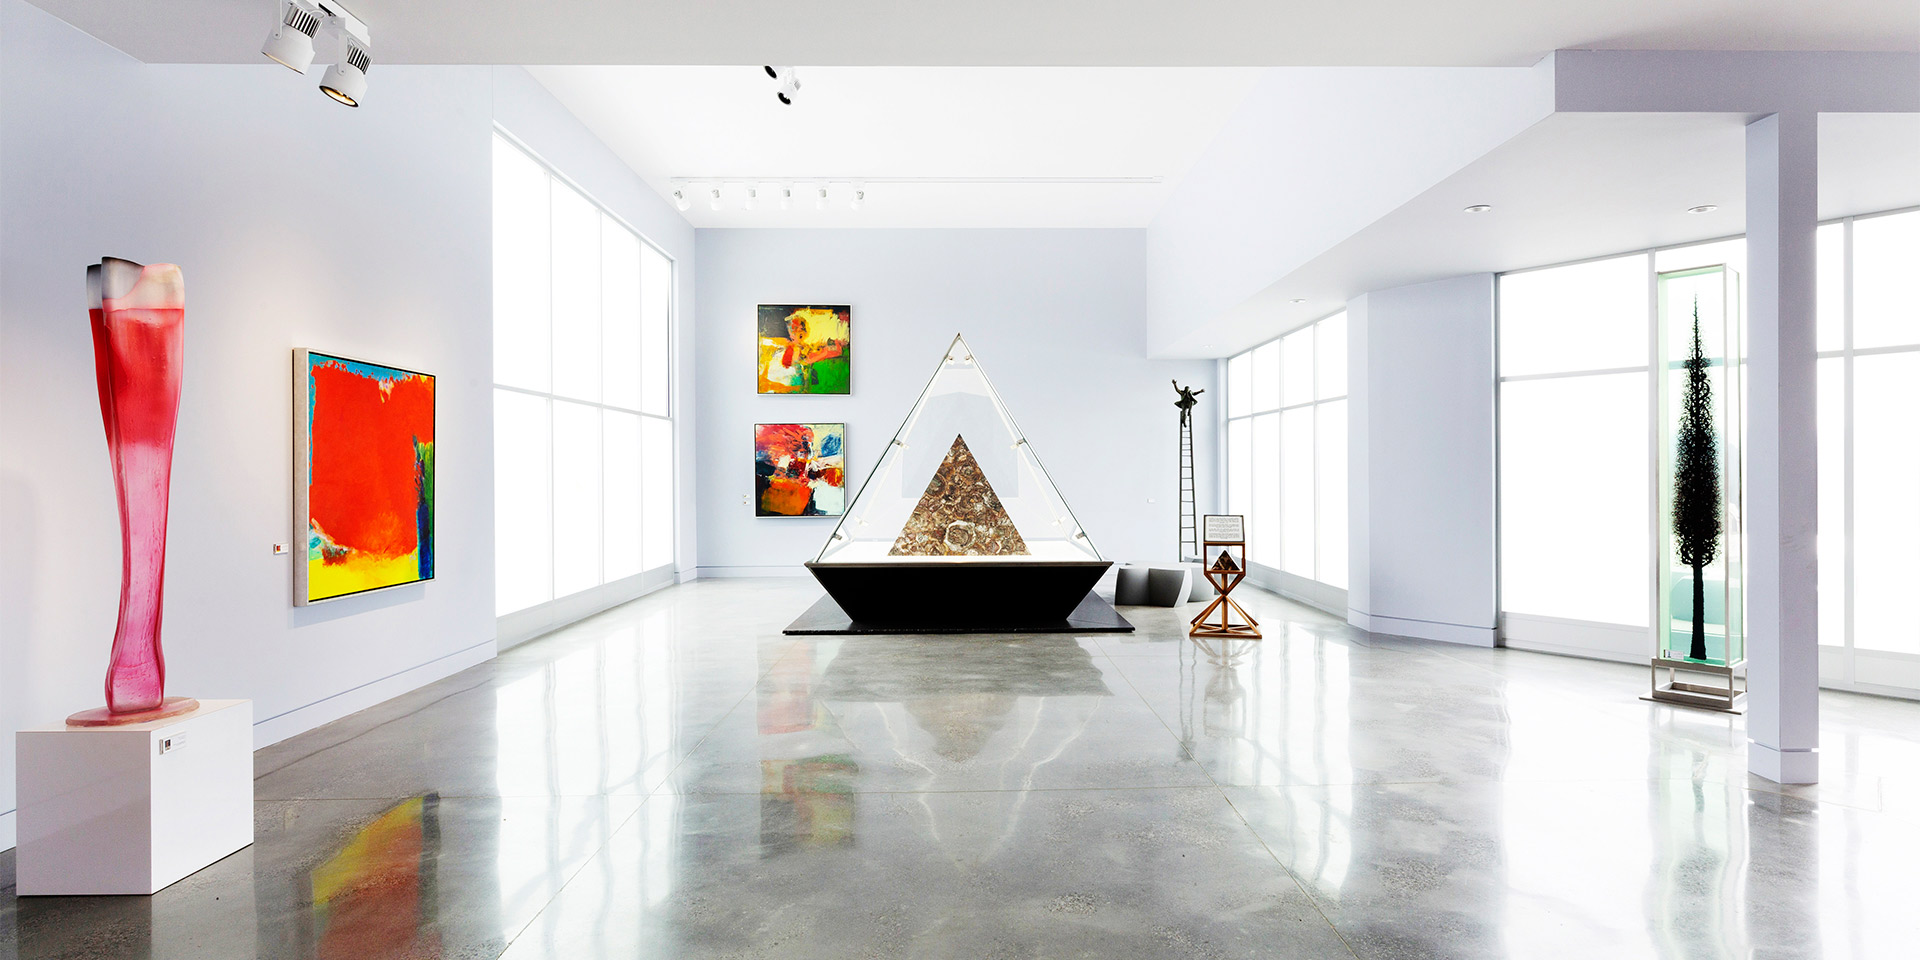 gallery style room with art and large glass pyramid sculpture in the middle